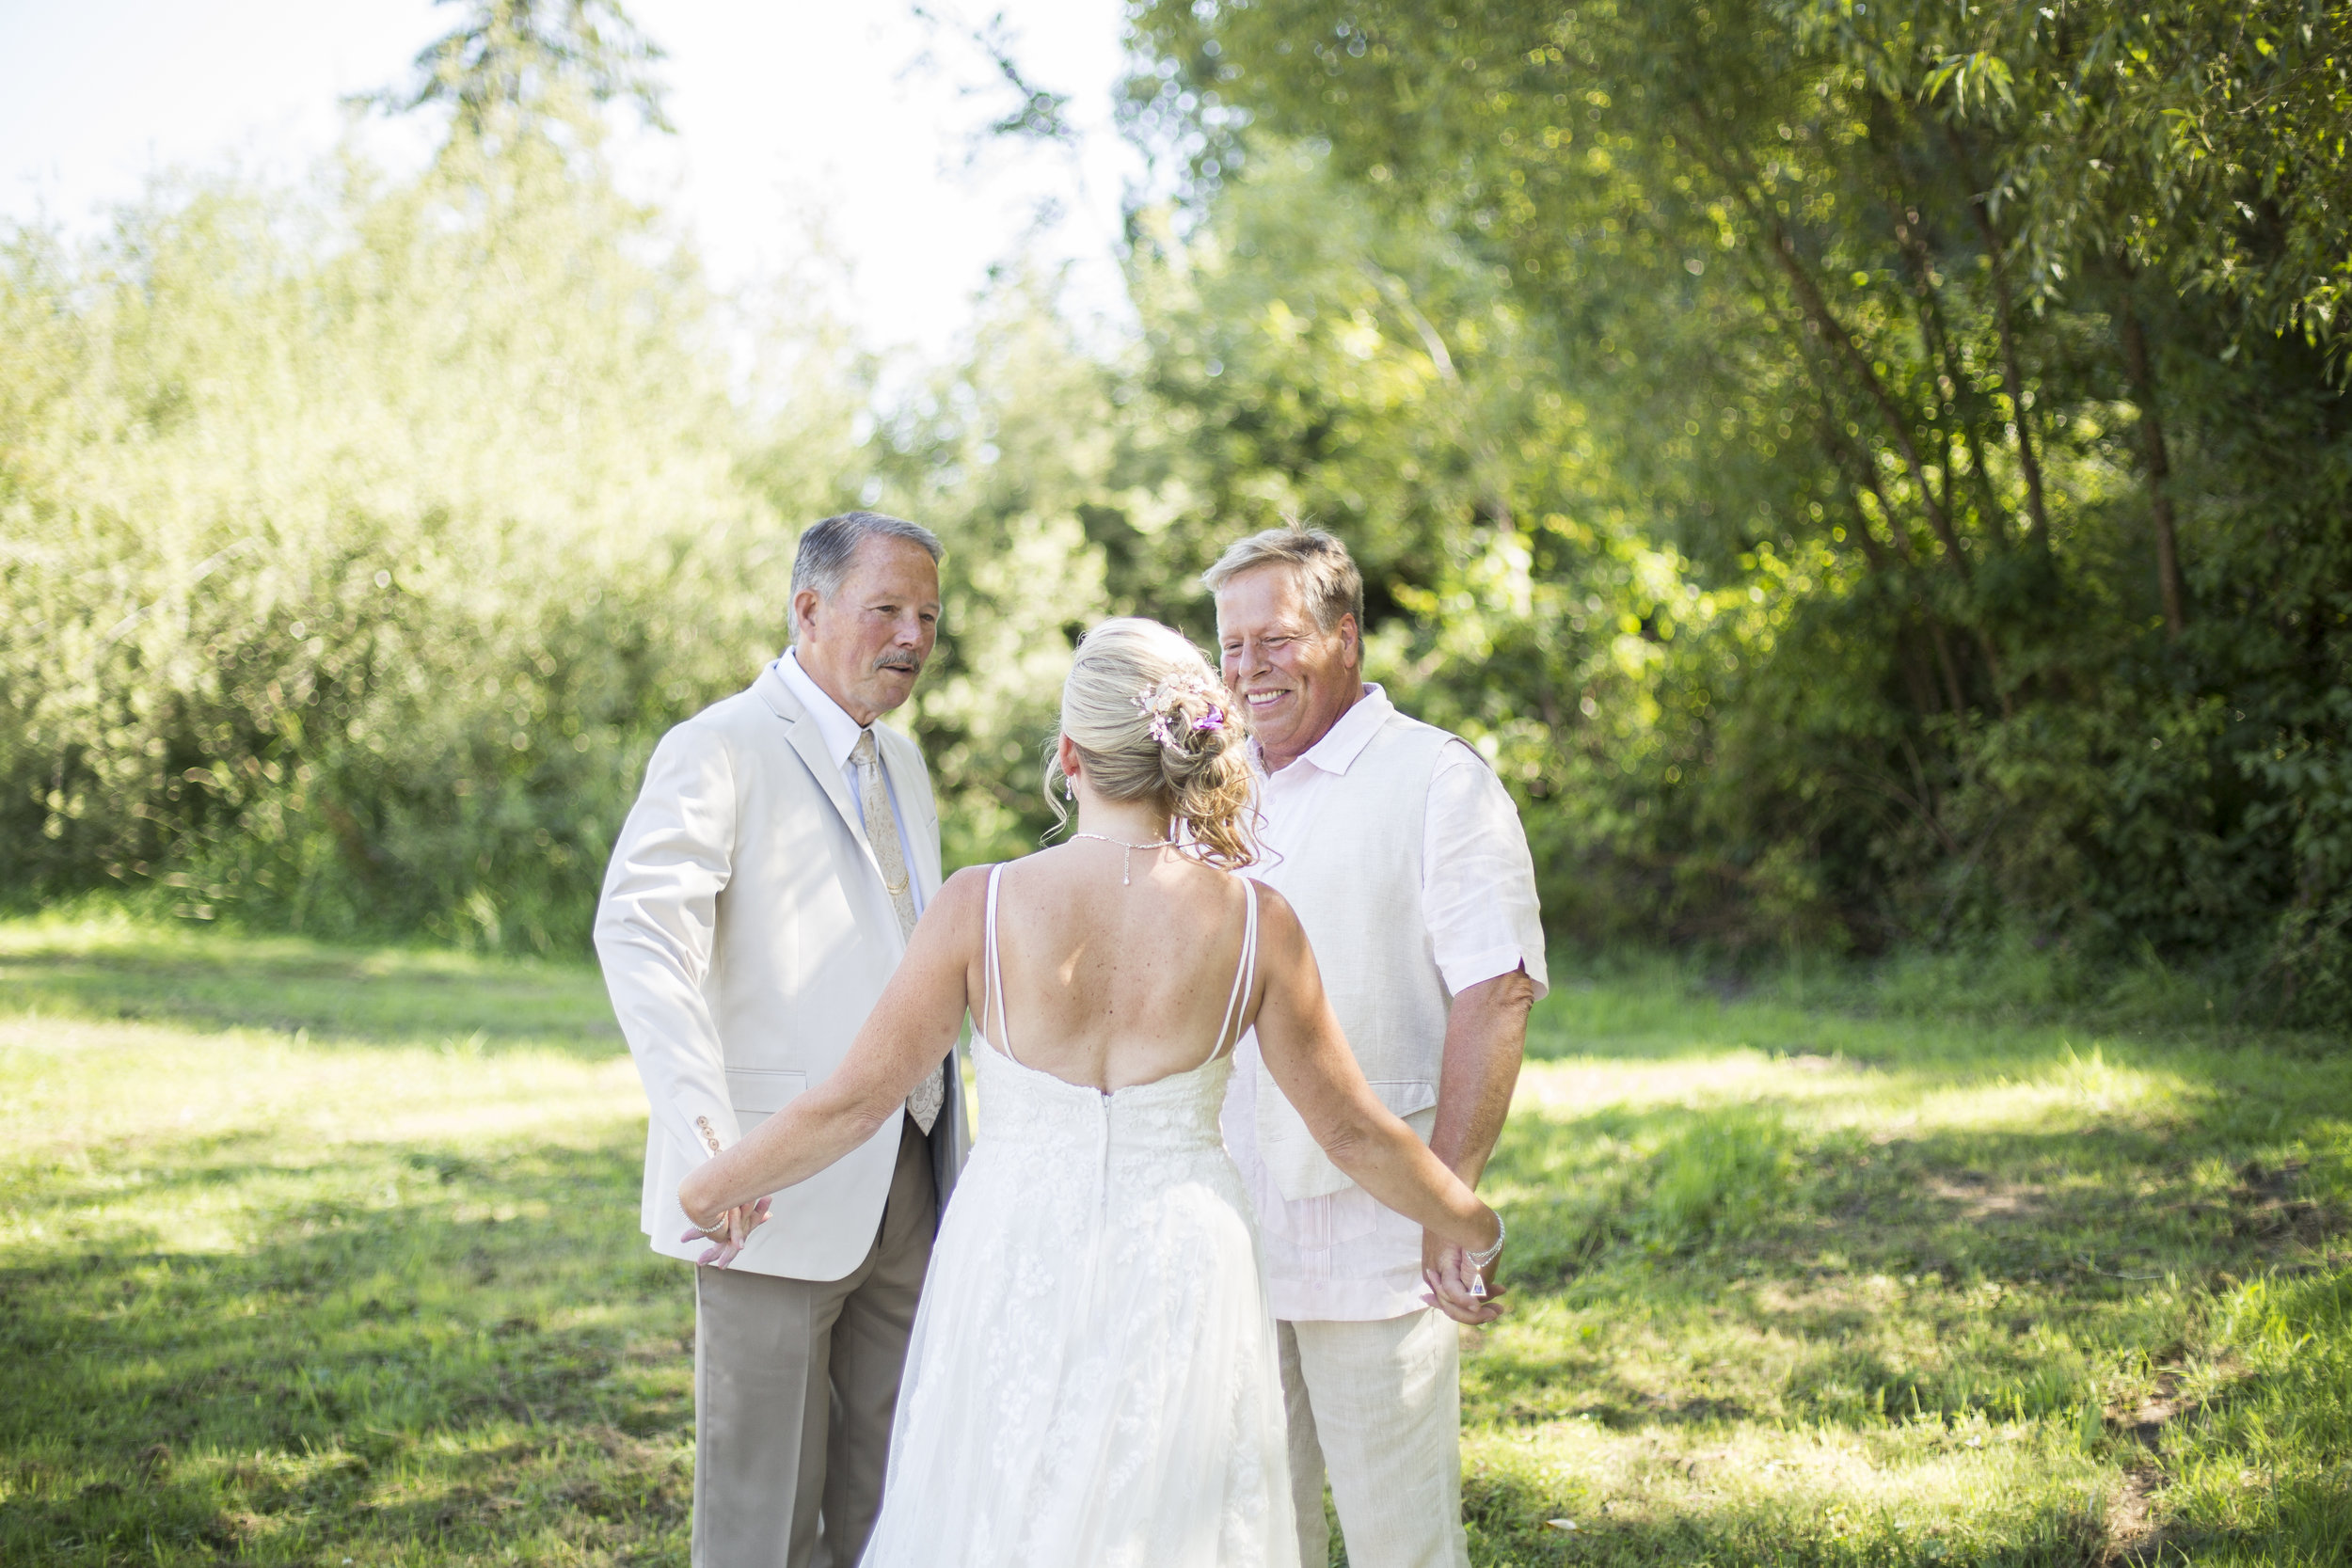 Seattle-Tacoma-Wedding-Photographer-Jaeda-Reed-LS08.jpg